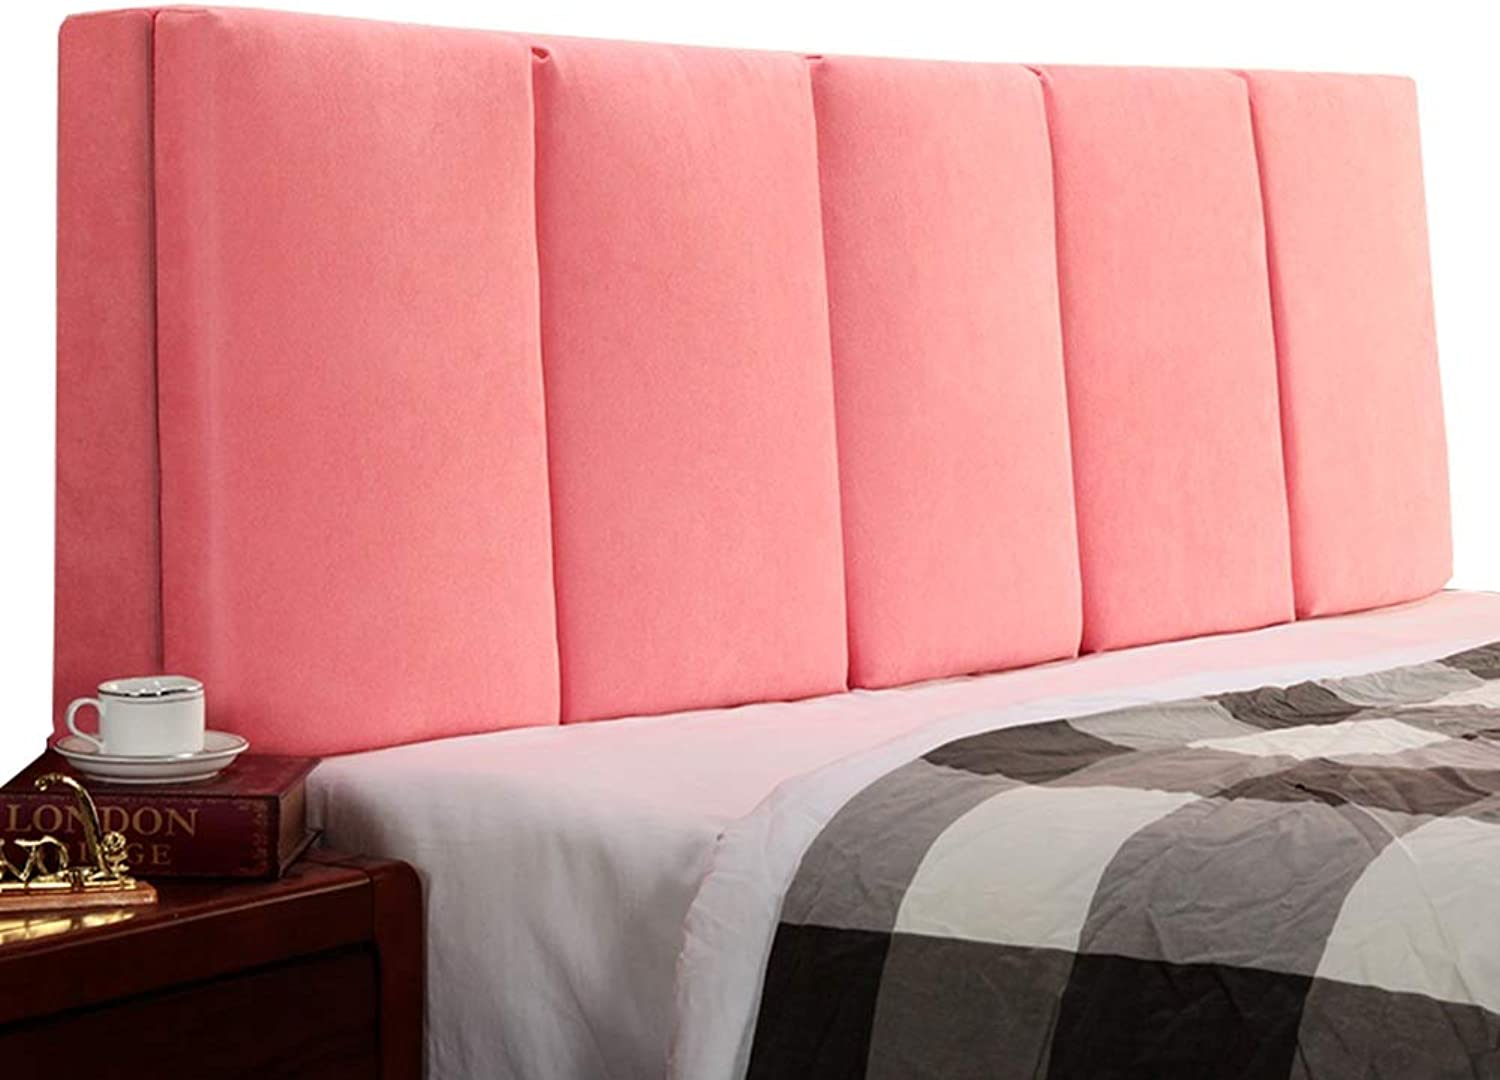 WENZHE Upholstered Fabric Headboard Bedside Cushion Pads Cover Bed Wedges backrest Waist pad Stripe Soft Case Cloth Washable Home Waist Belt Backrest, 4 colors (color   A-Pink, Size   120x55x5cm)